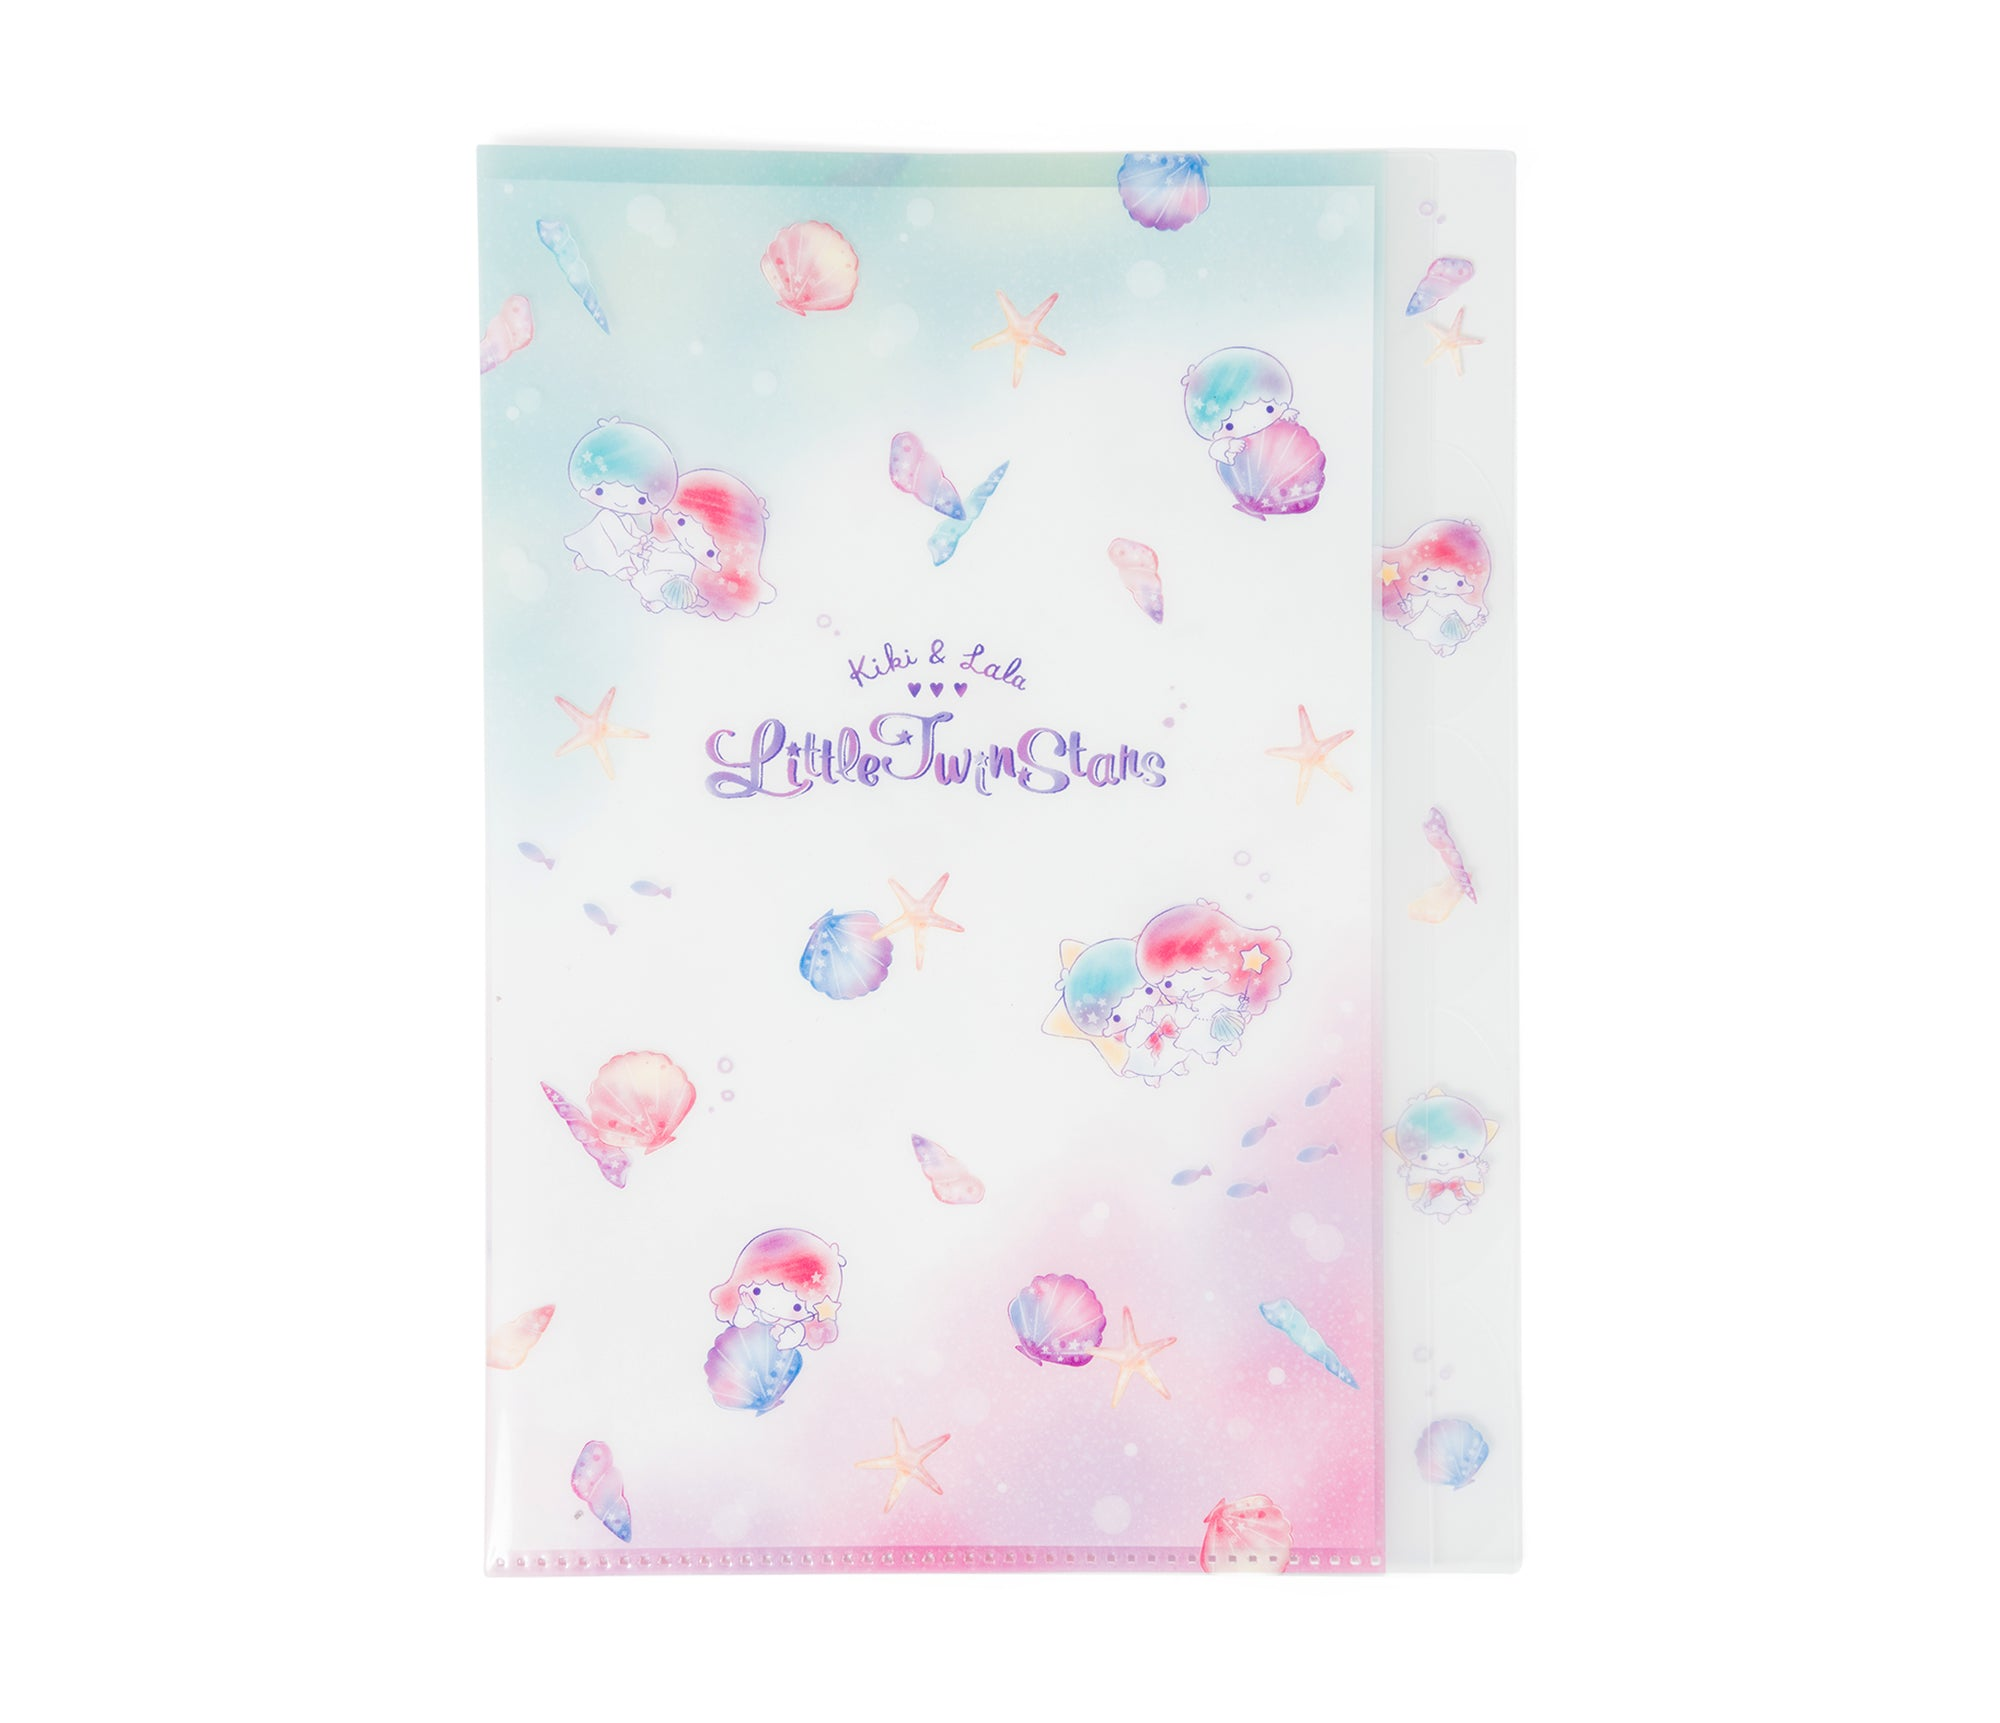 Little Twin Stars Seashells Clear File Folder